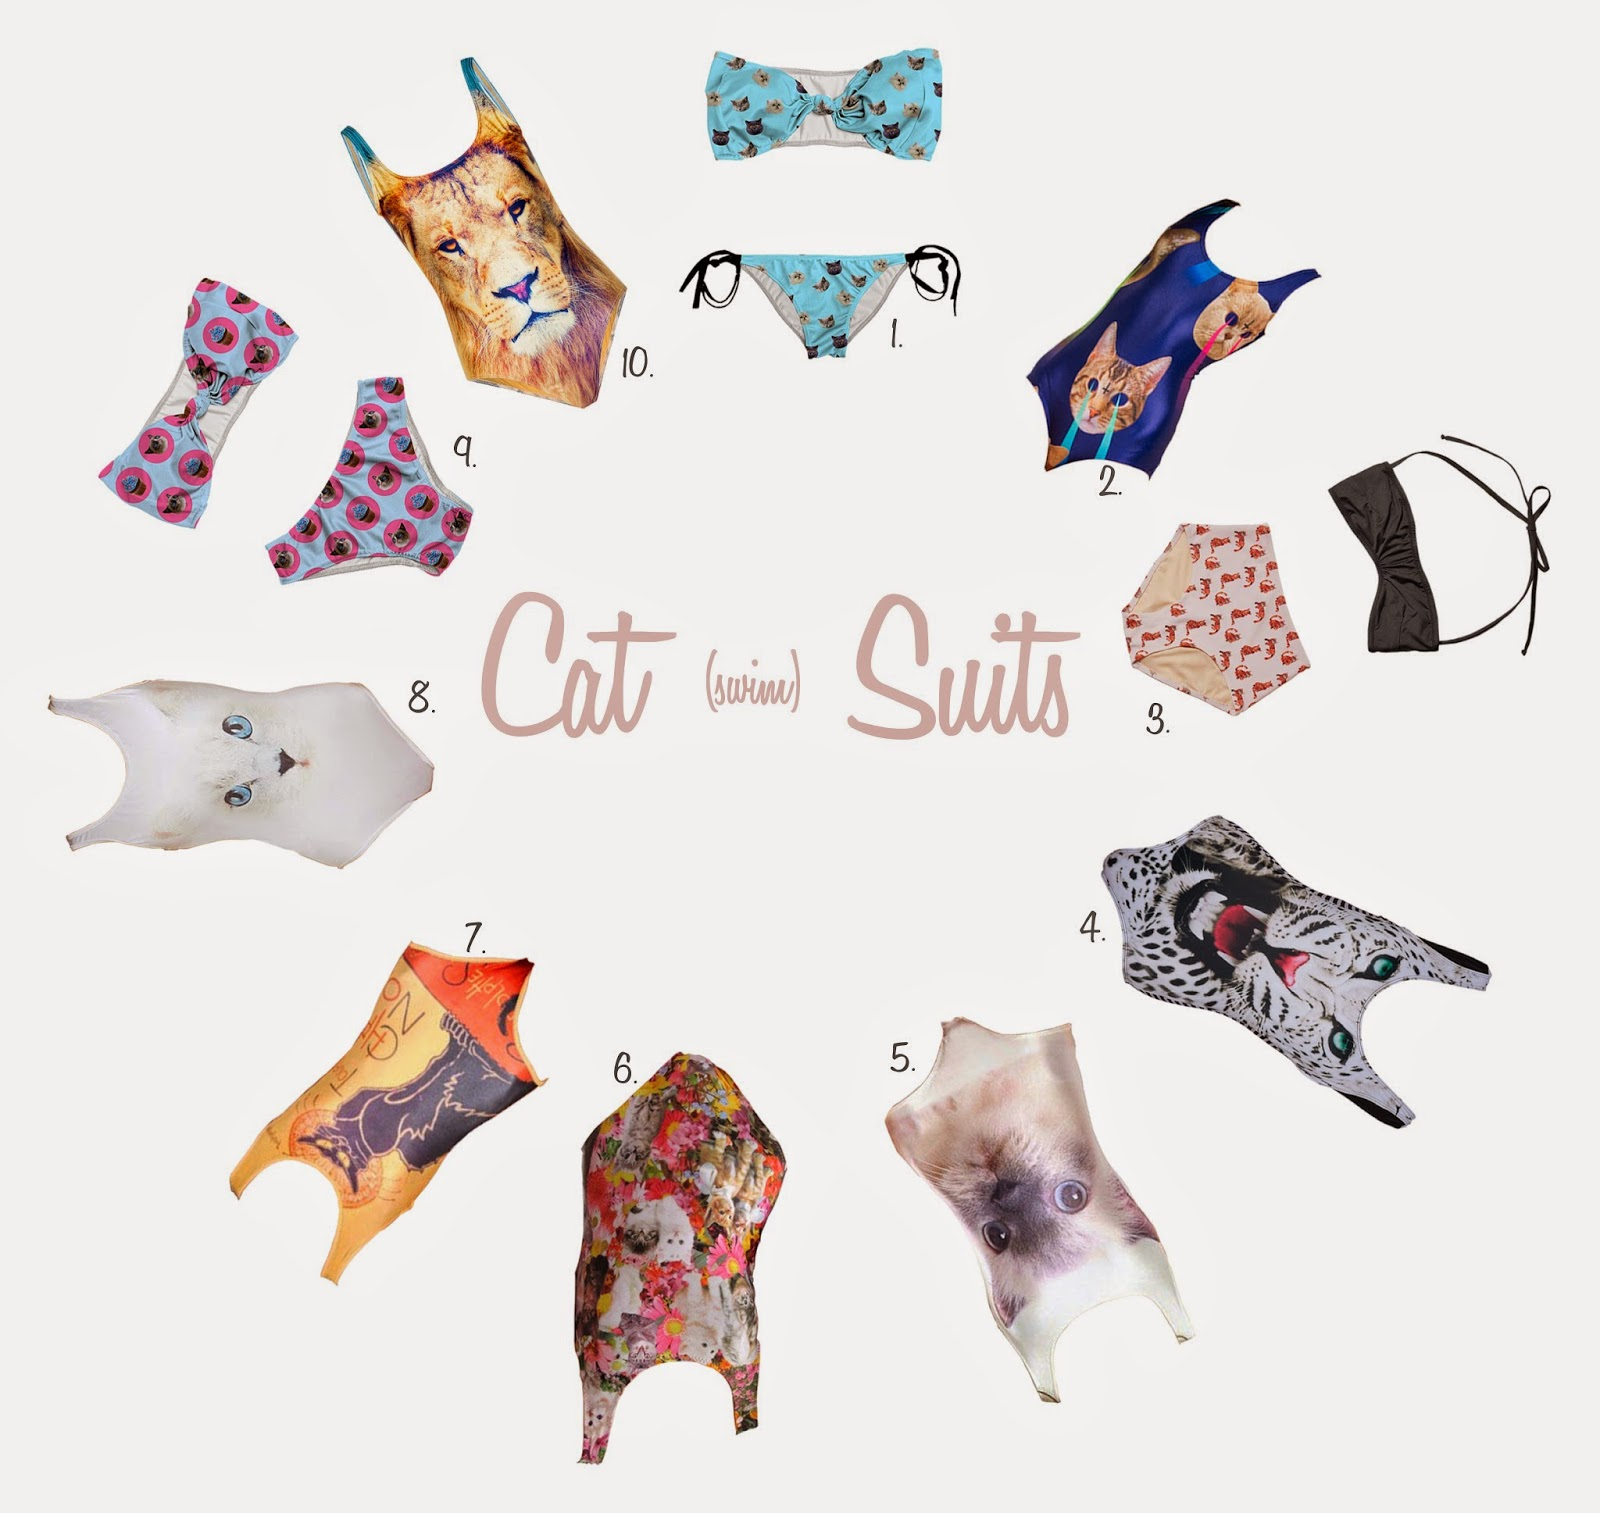 cat-swimwear, spinster-swimsuit, spinster-bikini, cat-bikini, kitten-bikini, beach-spinstering